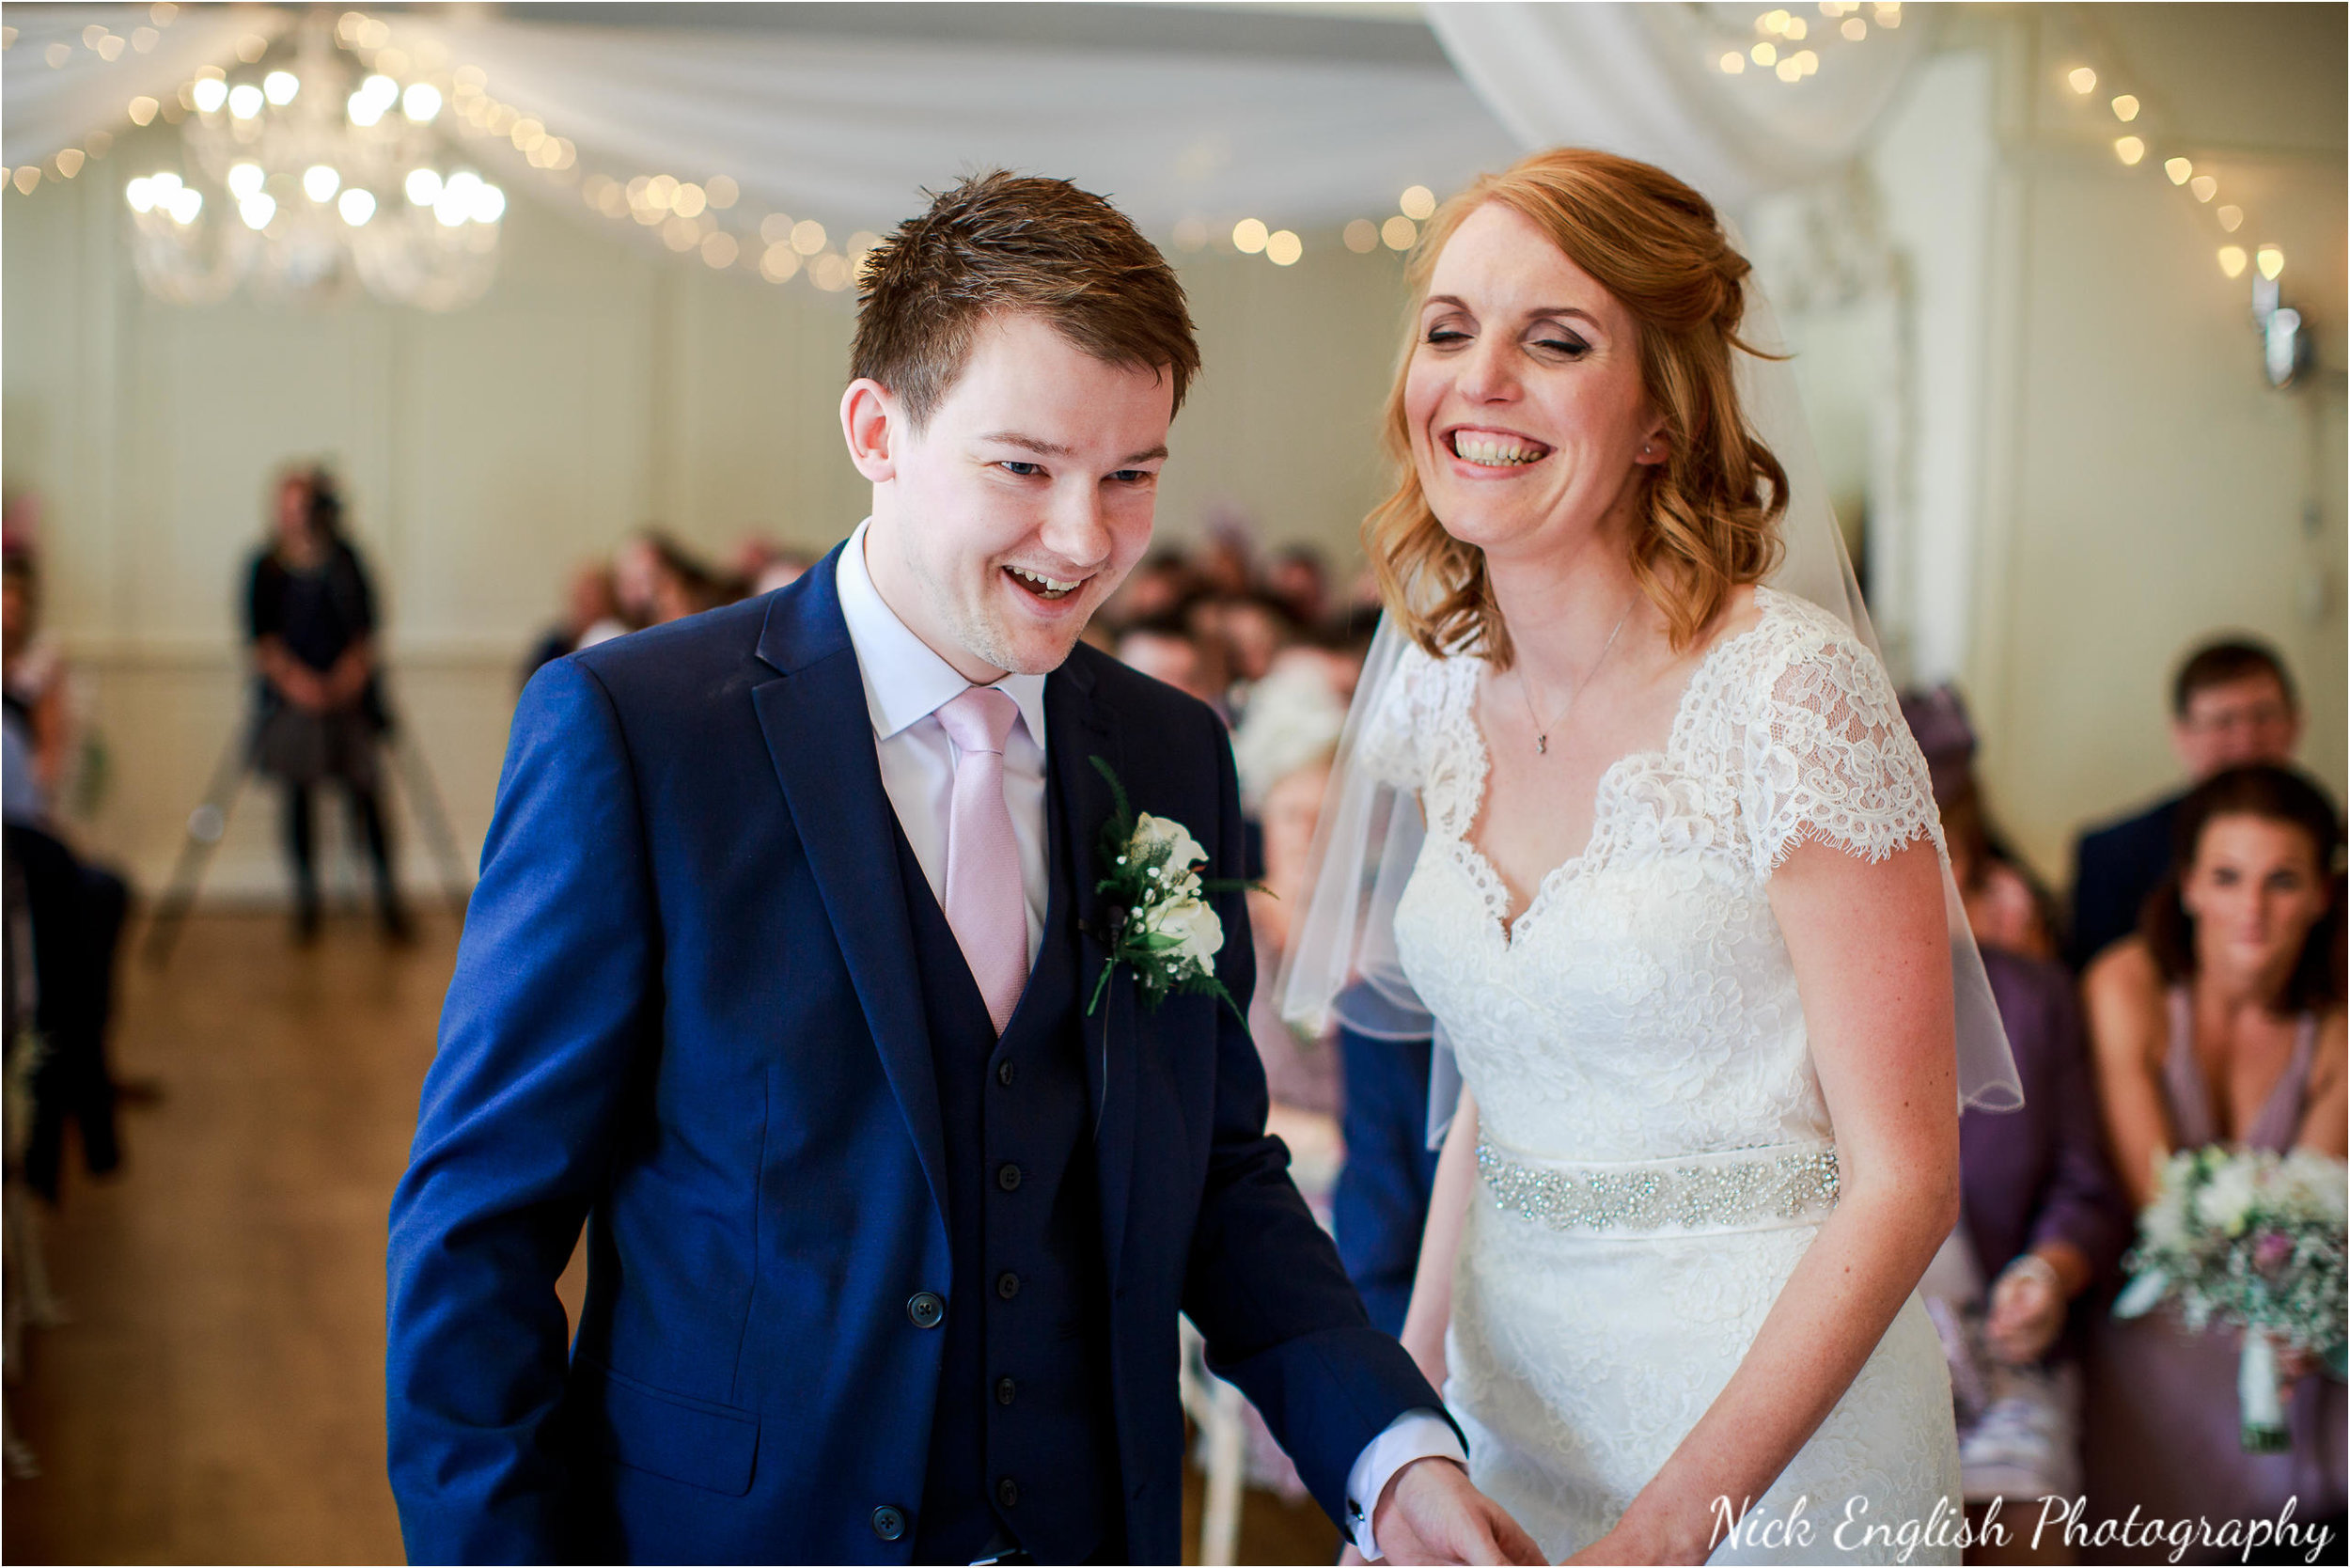 Alison James Wedding Photographs at Eaves Hall West Bradford 105jpg.jpeg